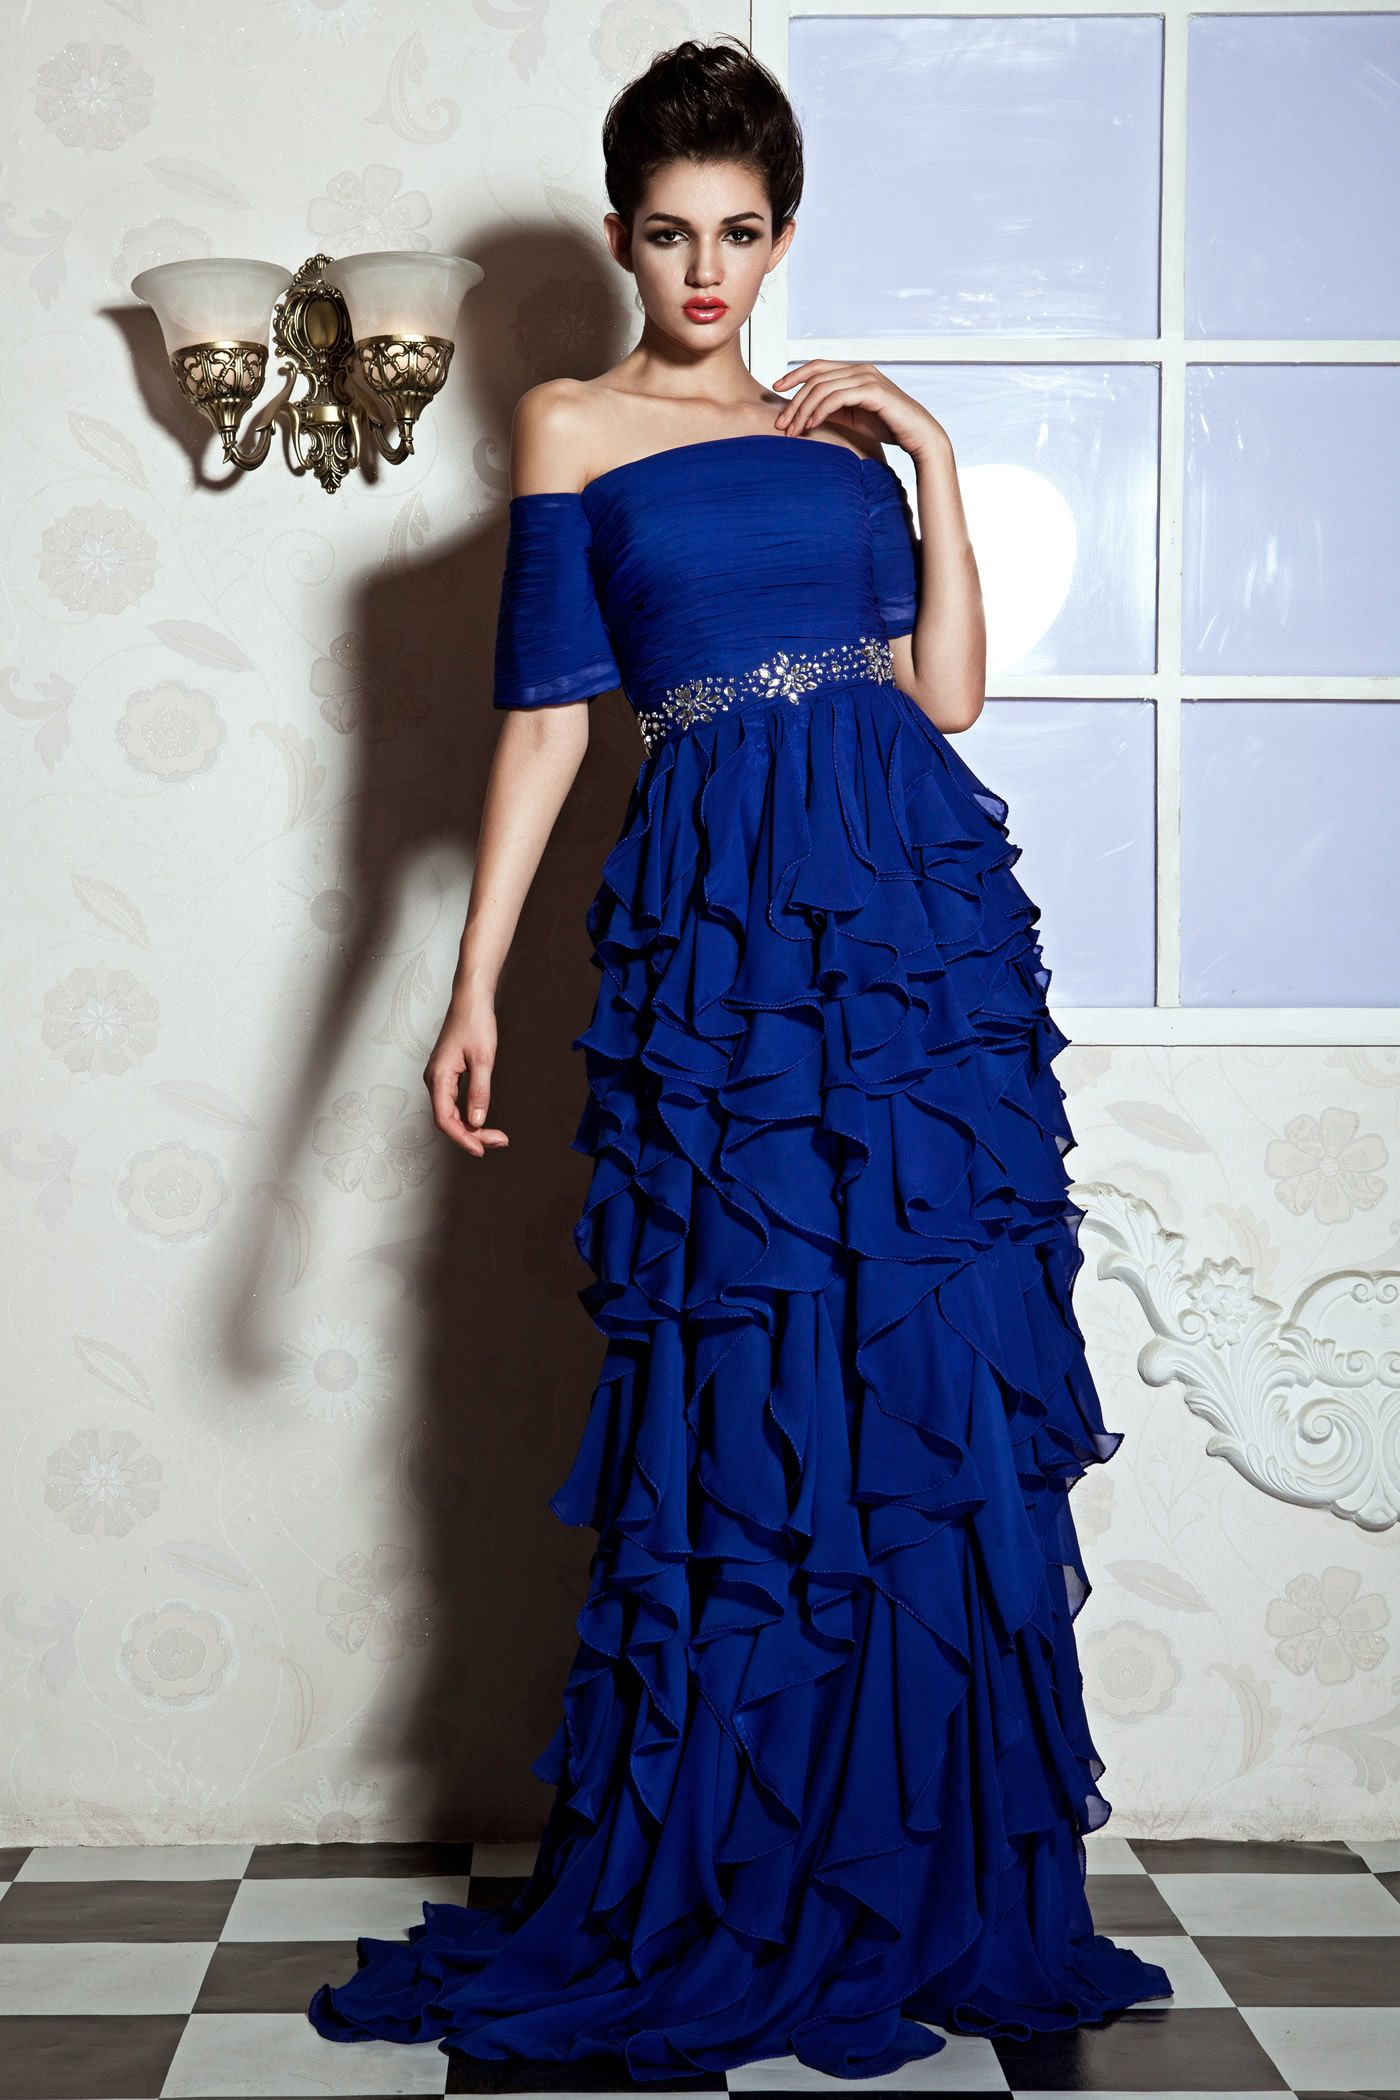 Special, Gorgeous A-Line Off-the-Shoulder Floor-Length Juliana's PromOff-the-ShoulderEvening Dress, Prom,107.99